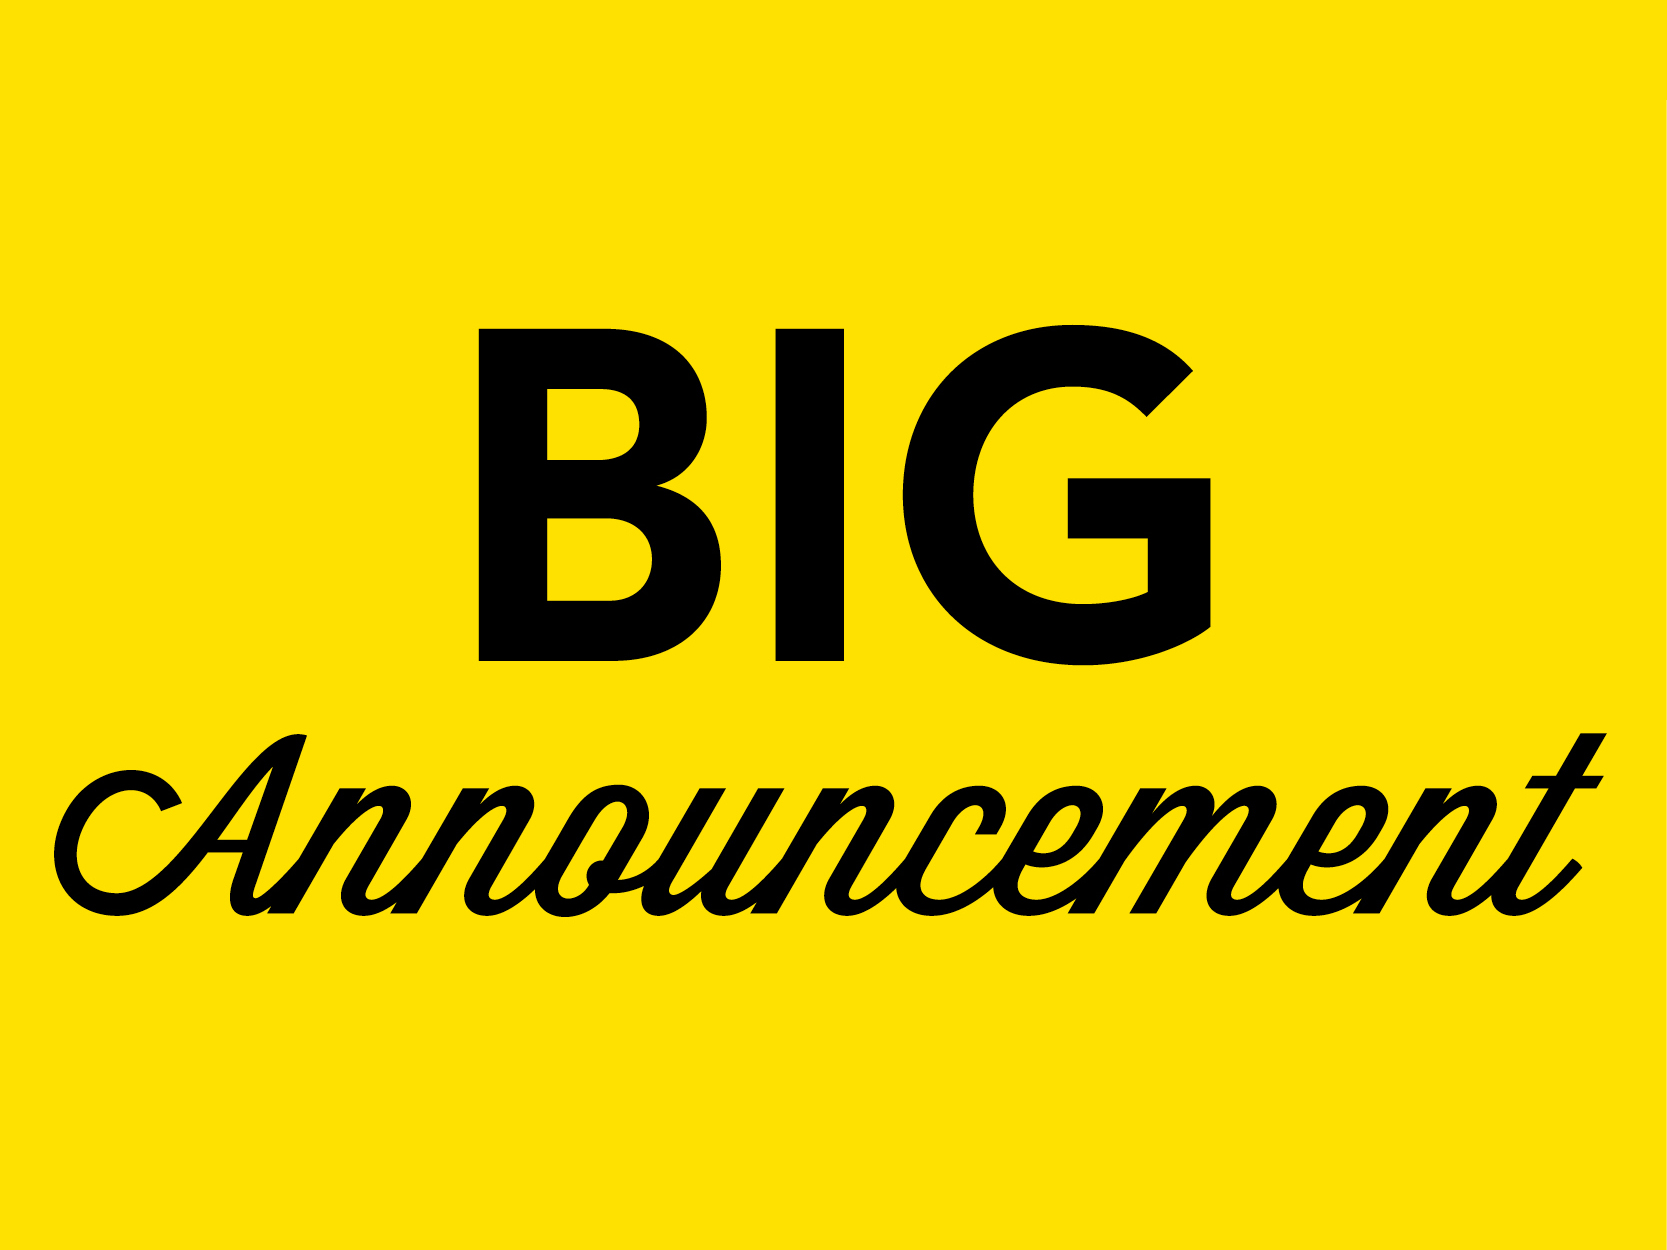 yellow background with black letters big announcement